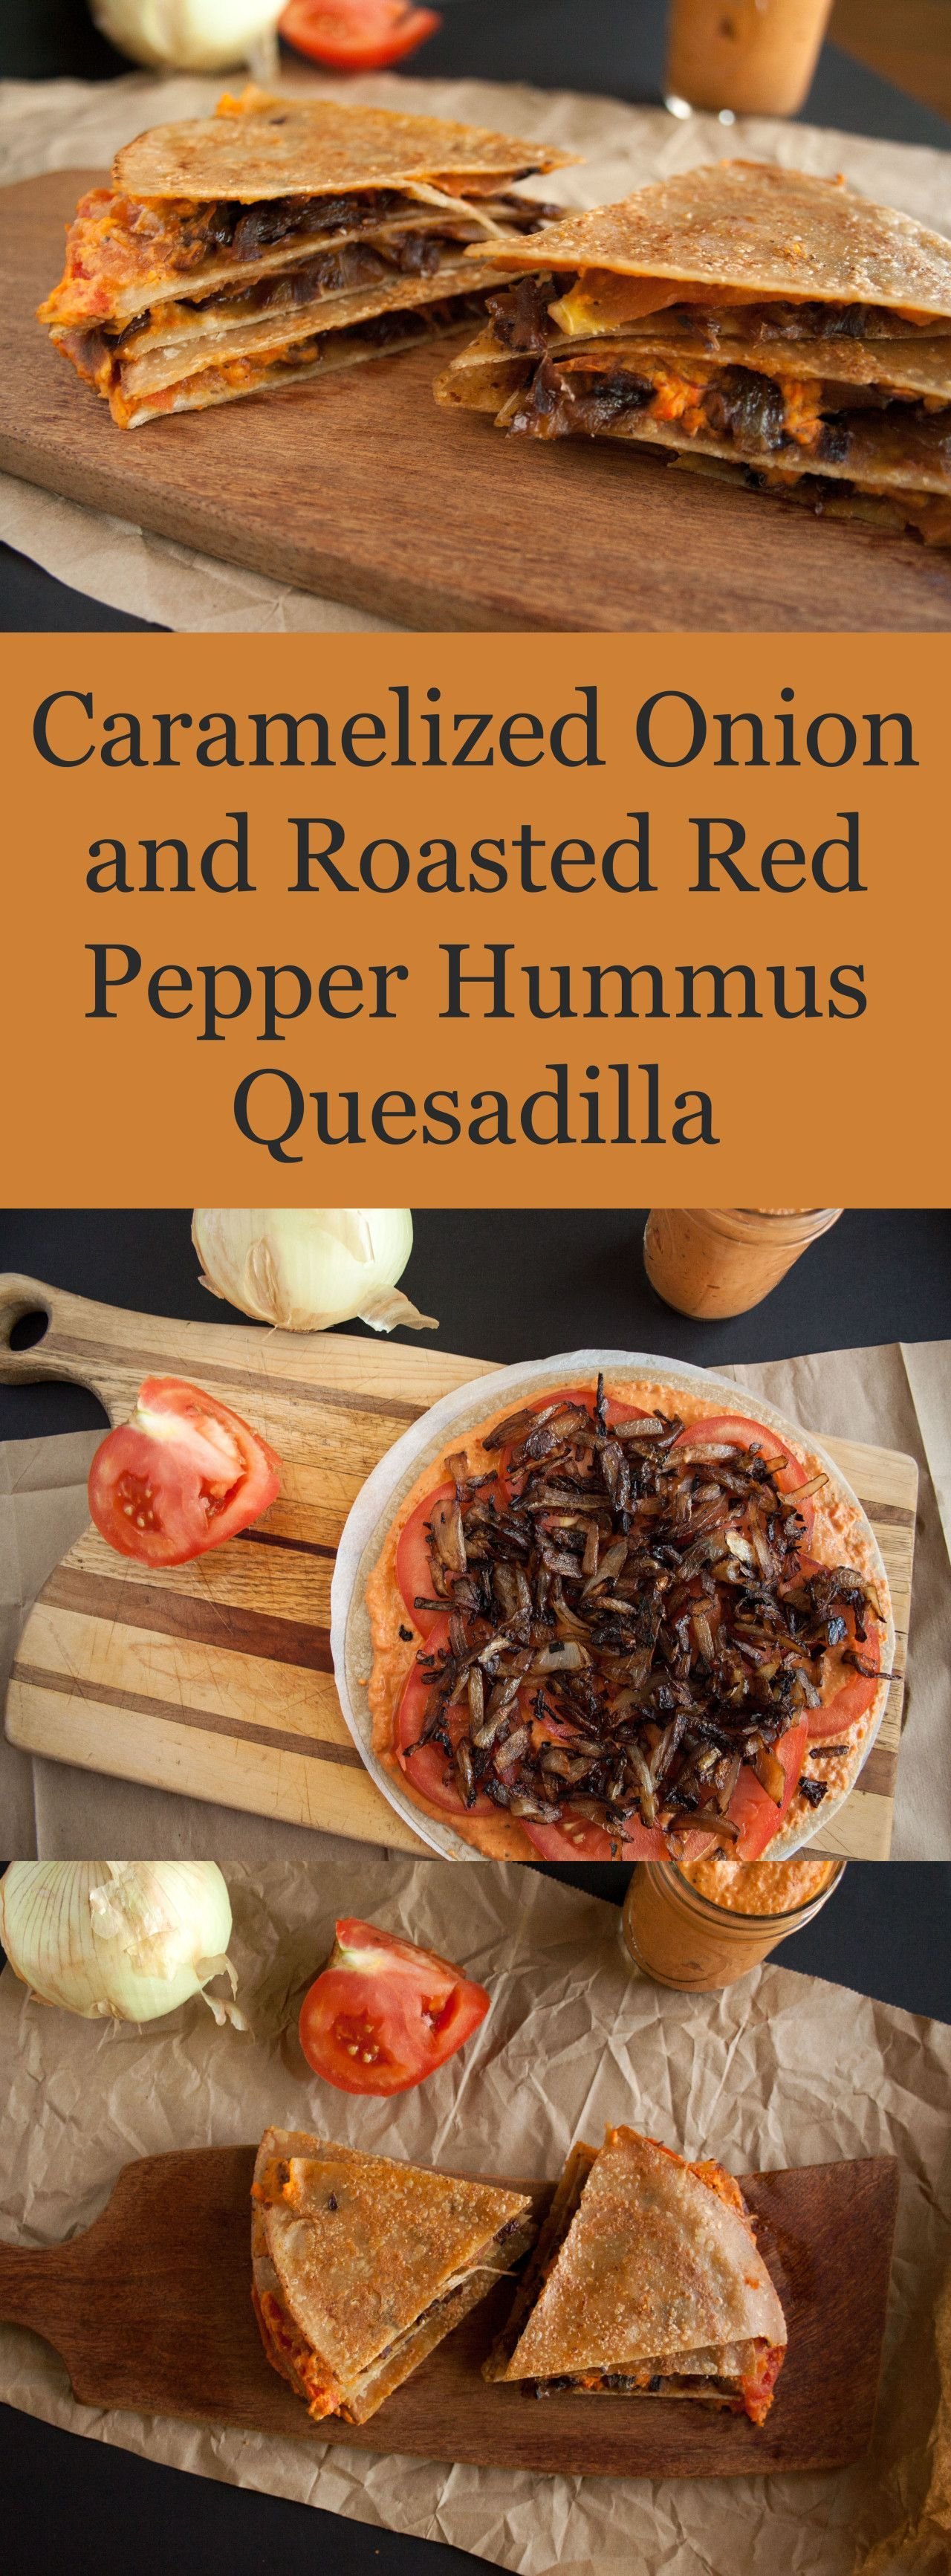 Onion and Roasted Red Pepper Quesadilla (gluten free) - This vegan quesadilla is rich and satisfying - perfect for an appetizer or meal.